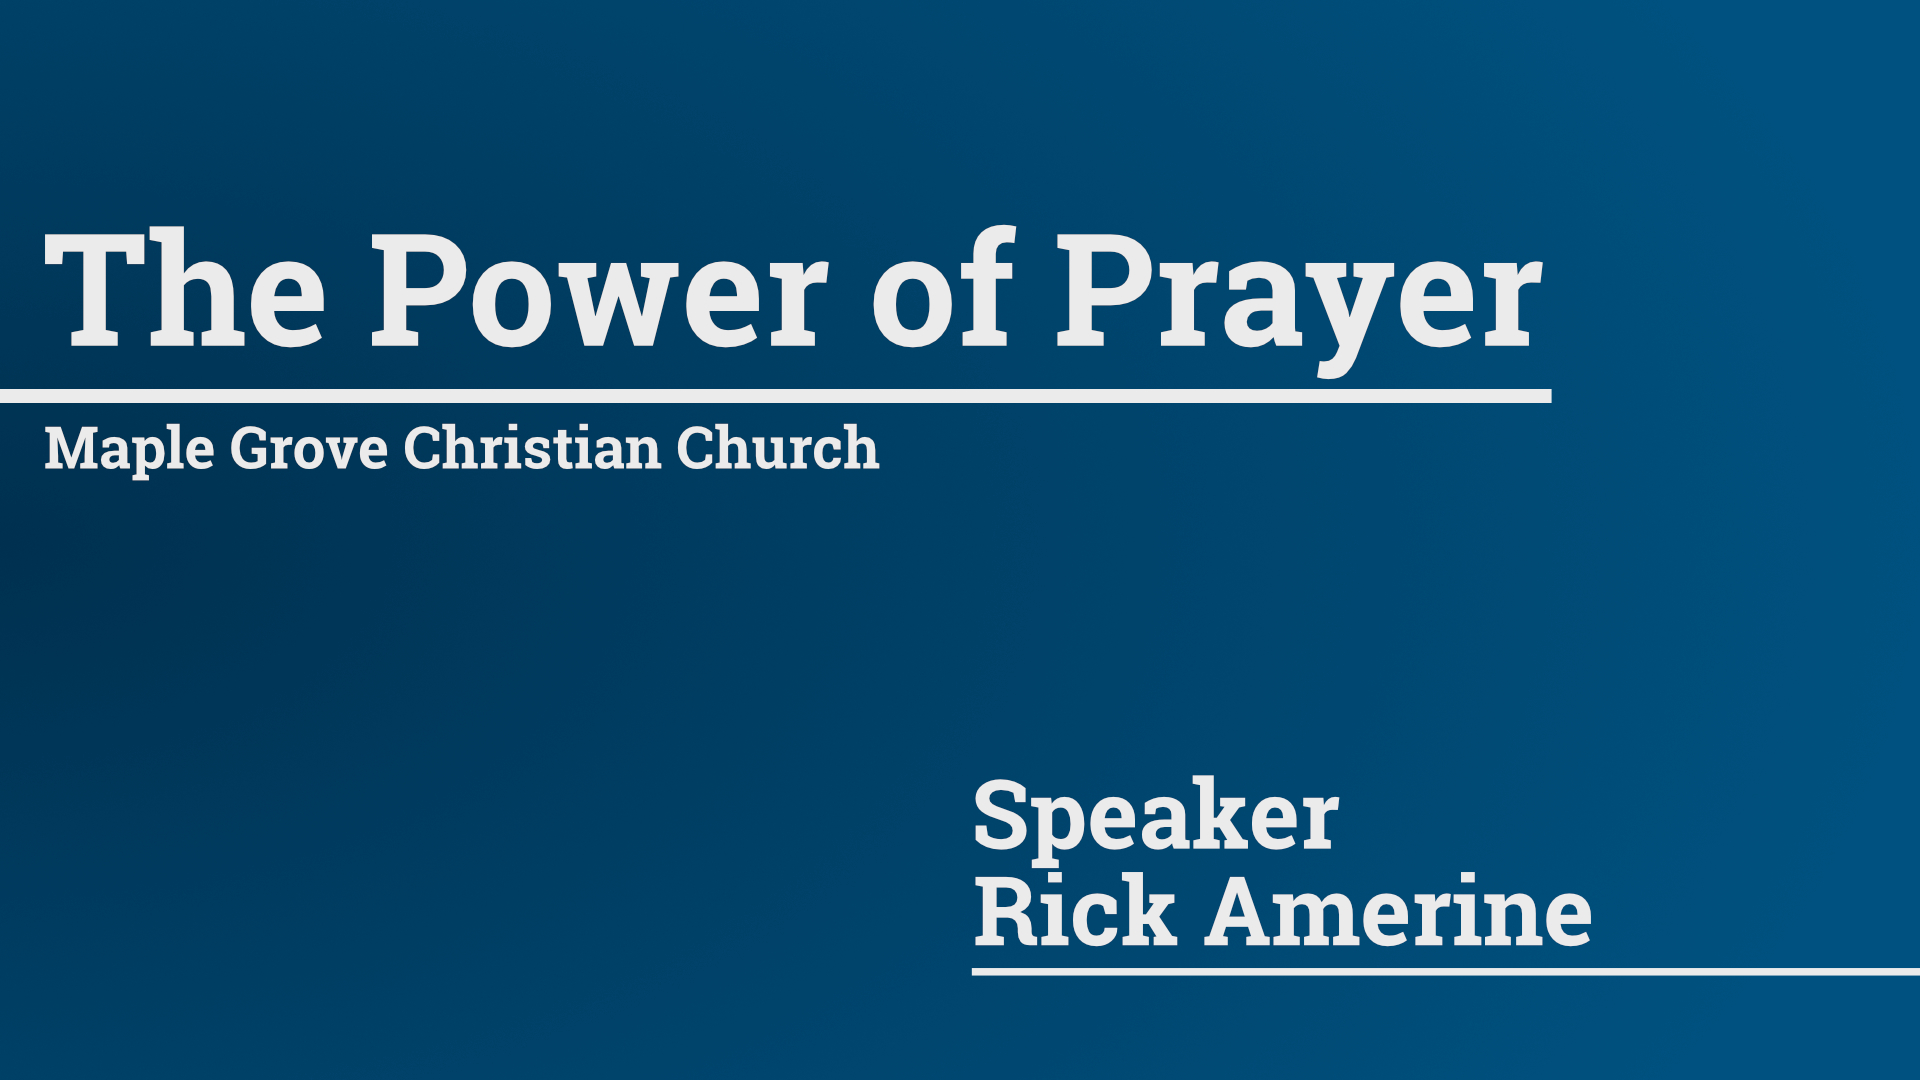 The Power of Prayer • Nov. 29, 2015